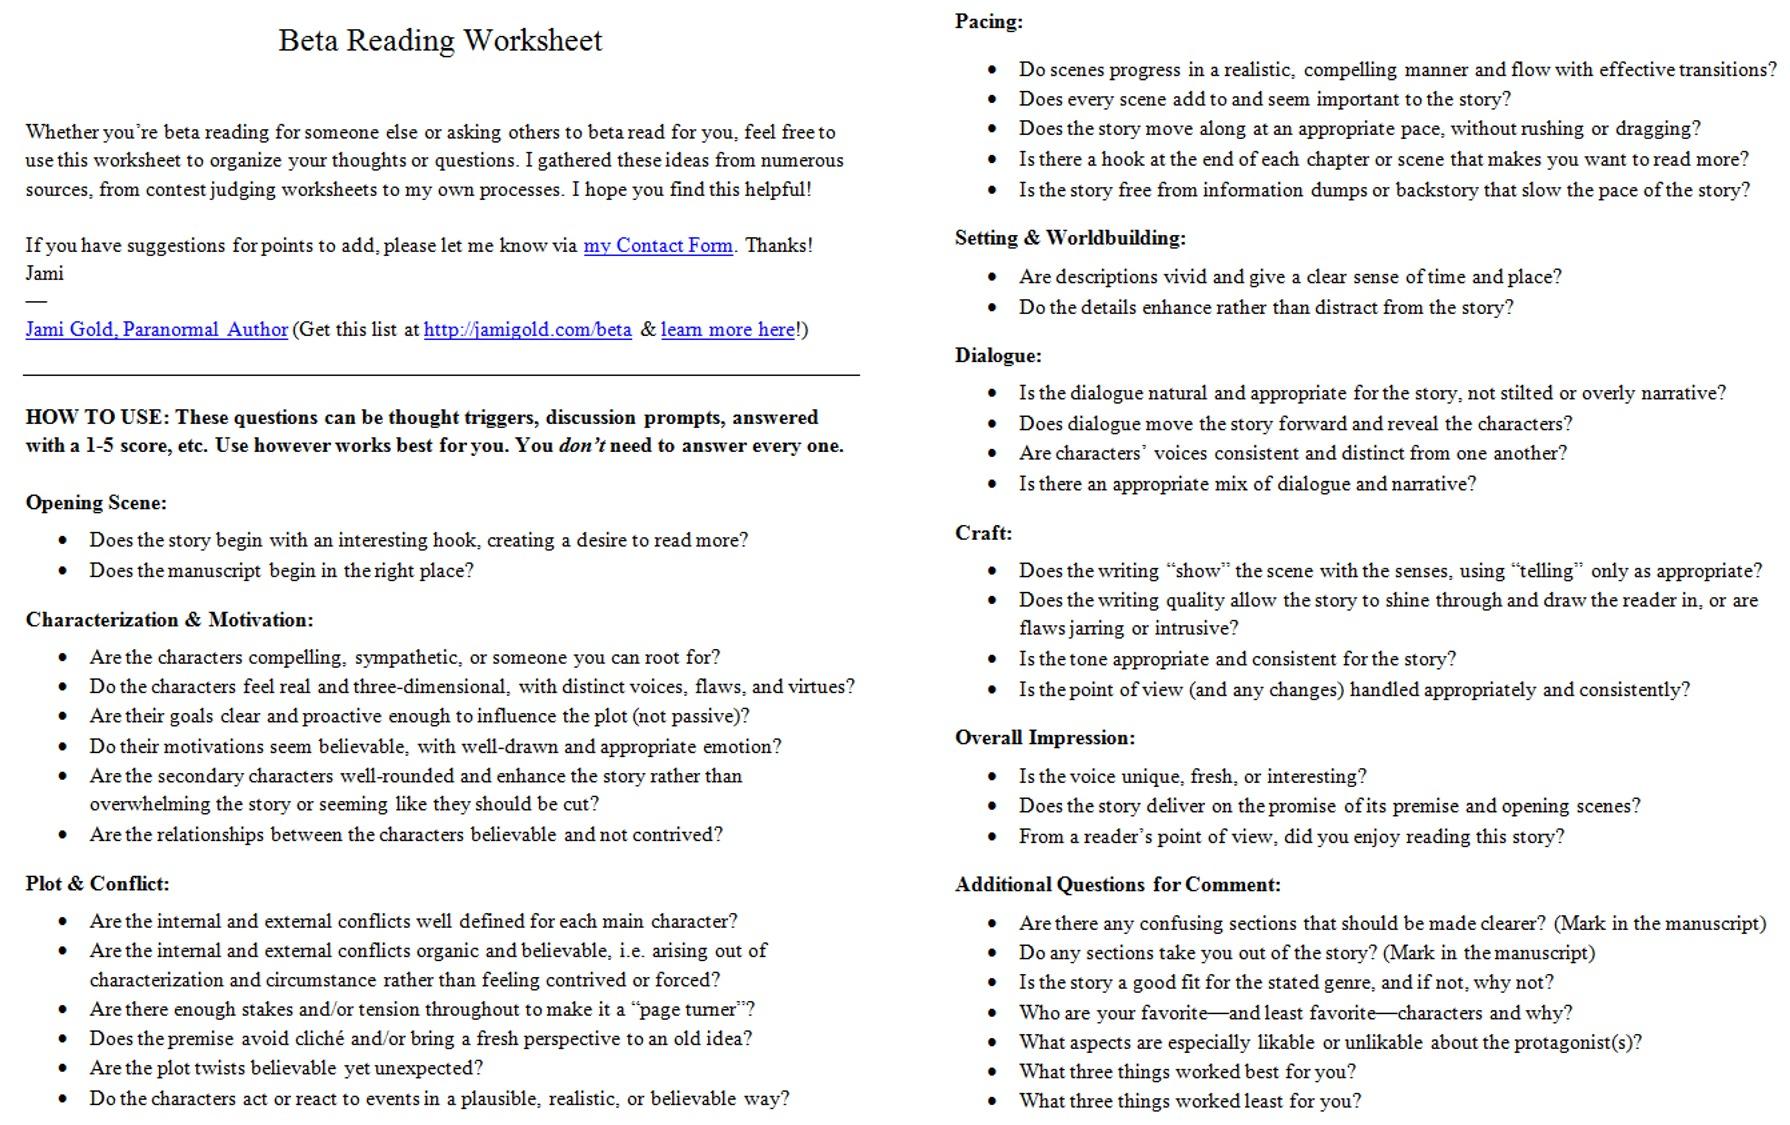 Proatmealus  Splendid Worksheets For Writers  Jami Gold Paranormal Author With Engaging Screen Shot Of The Twopage Beta Reading Worksheet With Alluring Letter N Worksheets Kindergarten Also Connectives Ks Worksheet In Addition Math Trigonometry Worksheets And Worksheet Number  As Well As Grade  Creative Writing Worksheets Additionally Worksheet Nouns From Jamigoldcom With Proatmealus  Engaging Worksheets For Writers  Jami Gold Paranormal Author With Alluring Screen Shot Of The Twopage Beta Reading Worksheet And Splendid Letter N Worksheets Kindergarten Also Connectives Ks Worksheet In Addition Math Trigonometry Worksheets From Jamigoldcom